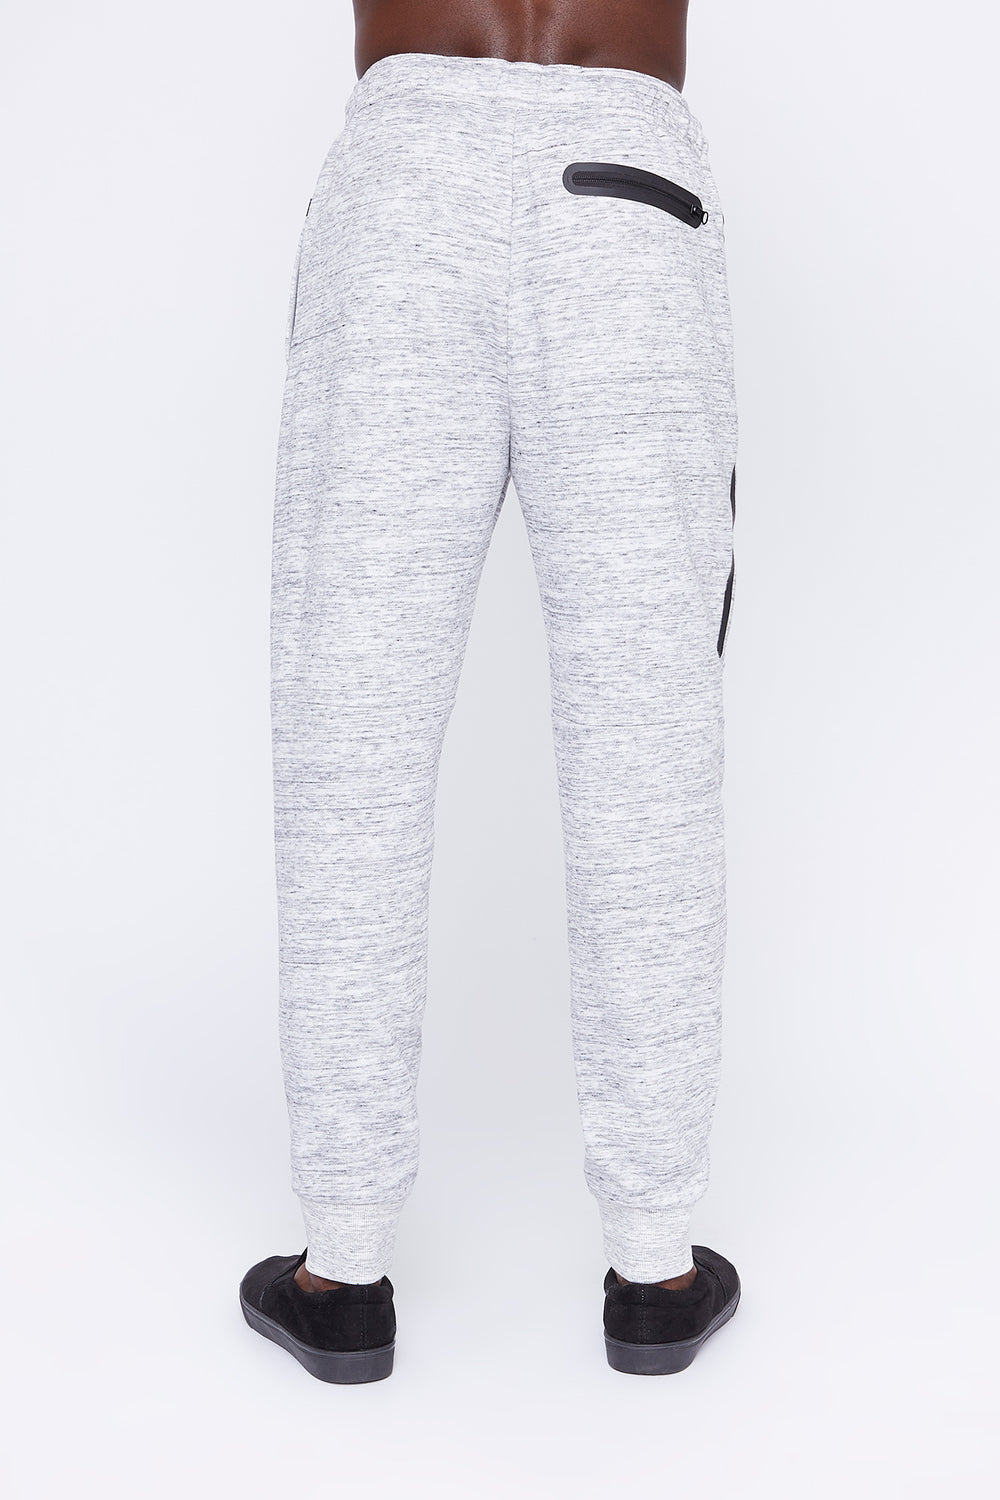 West49 Mens Spacedye Jogger Heather Grey